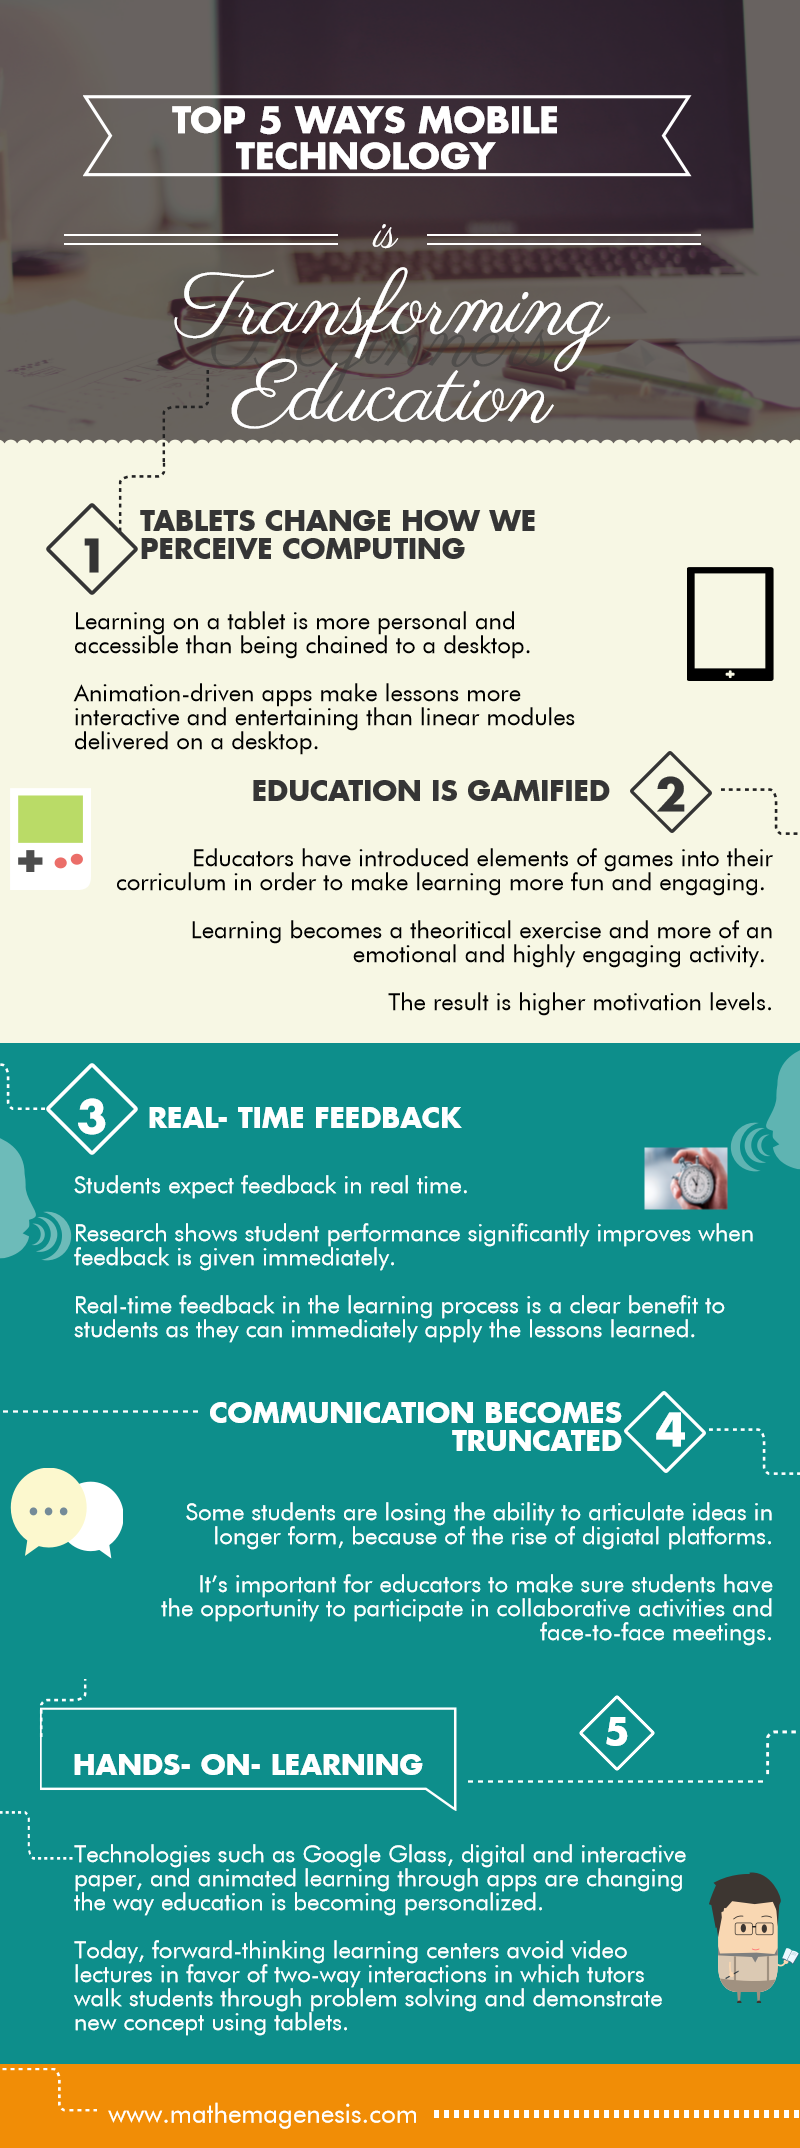 top-5-ways-mobile-technology-is-transforming-education-mathemagenesis-com